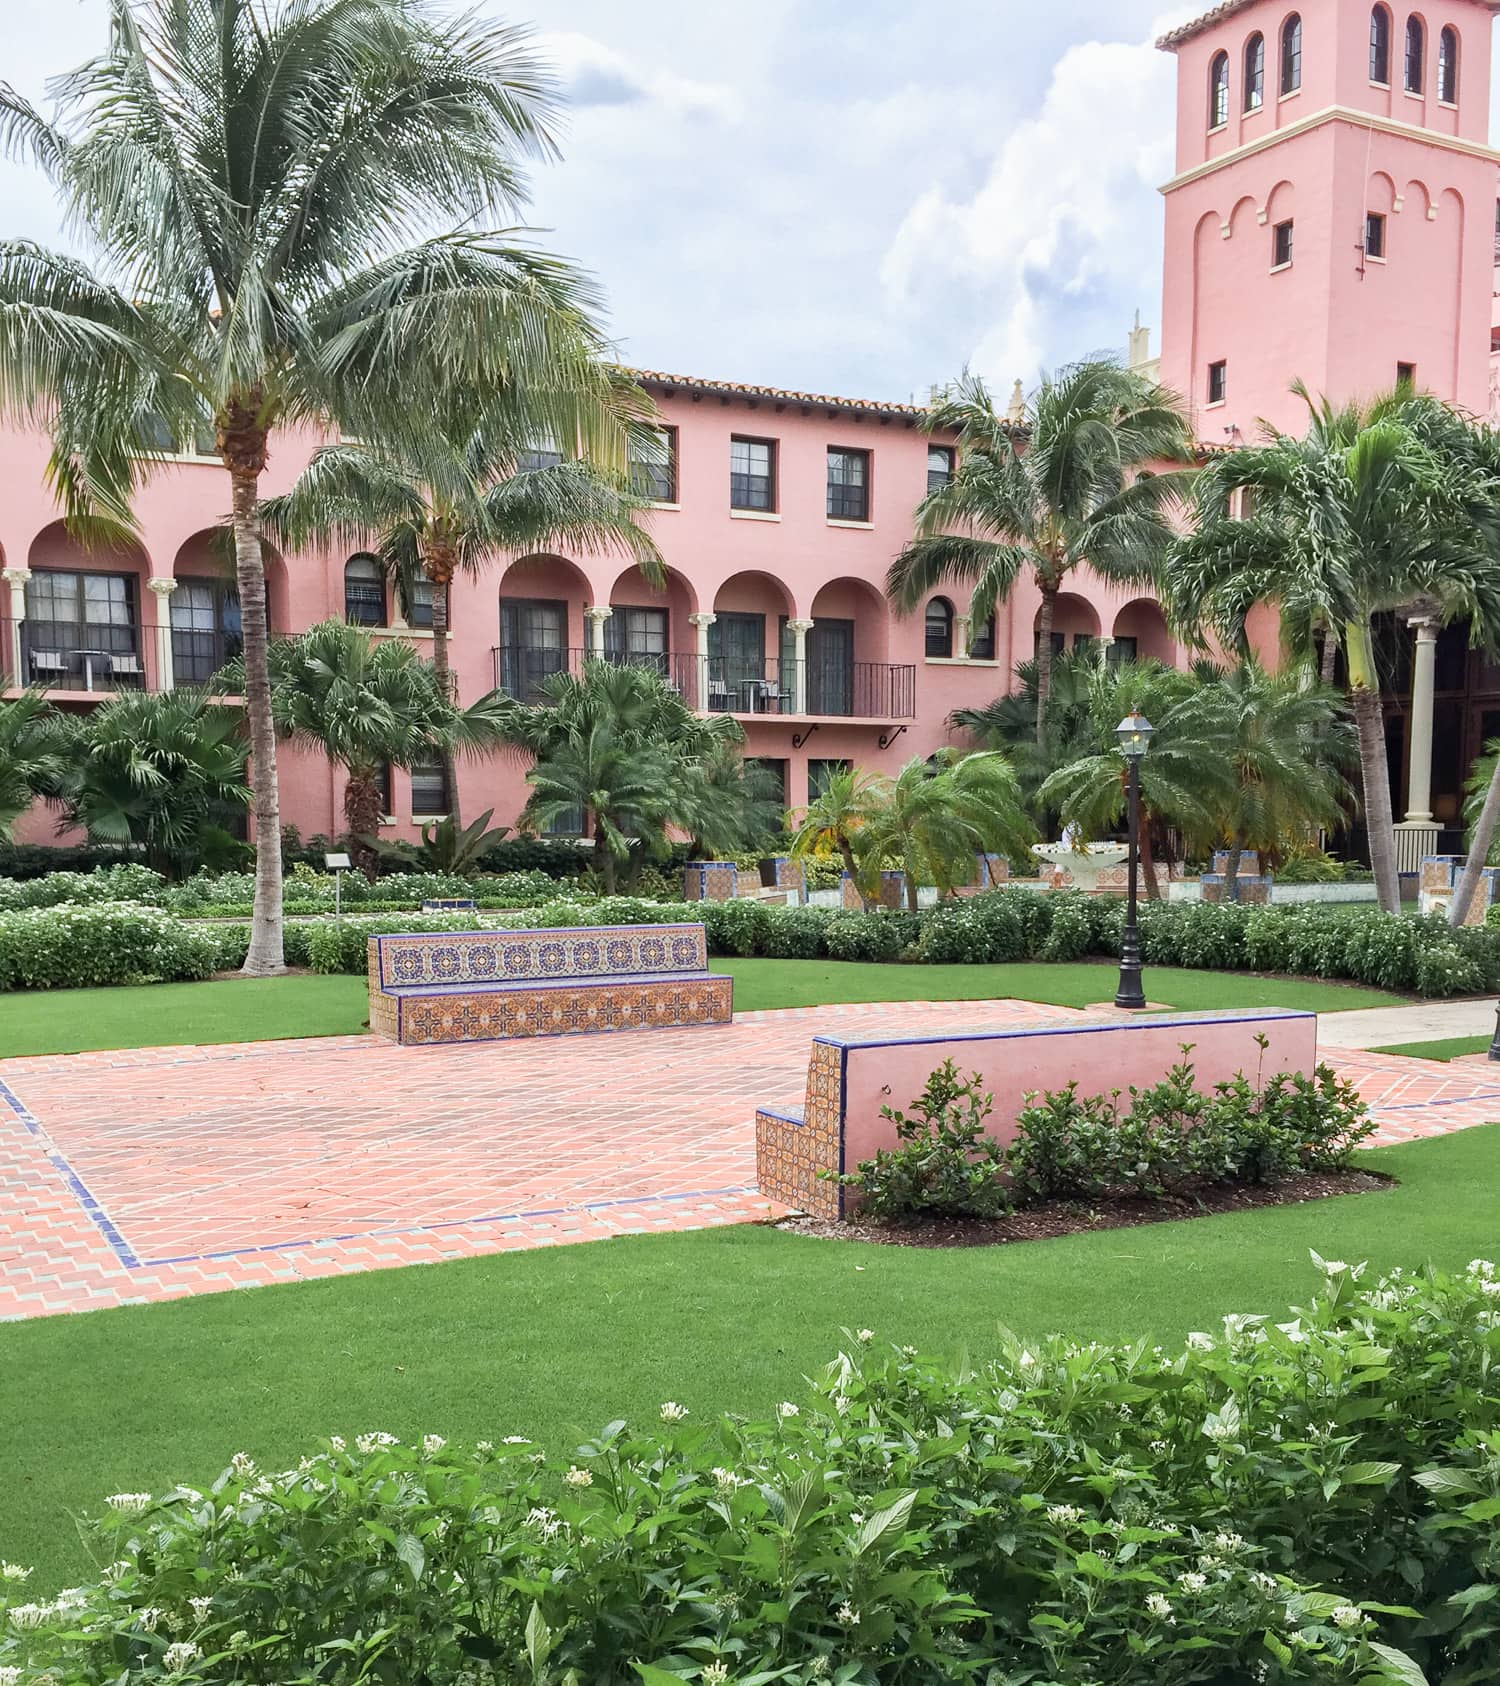 A full review of the Boca Raton Resort & Club by blogger Ashley Brooke Nicholas